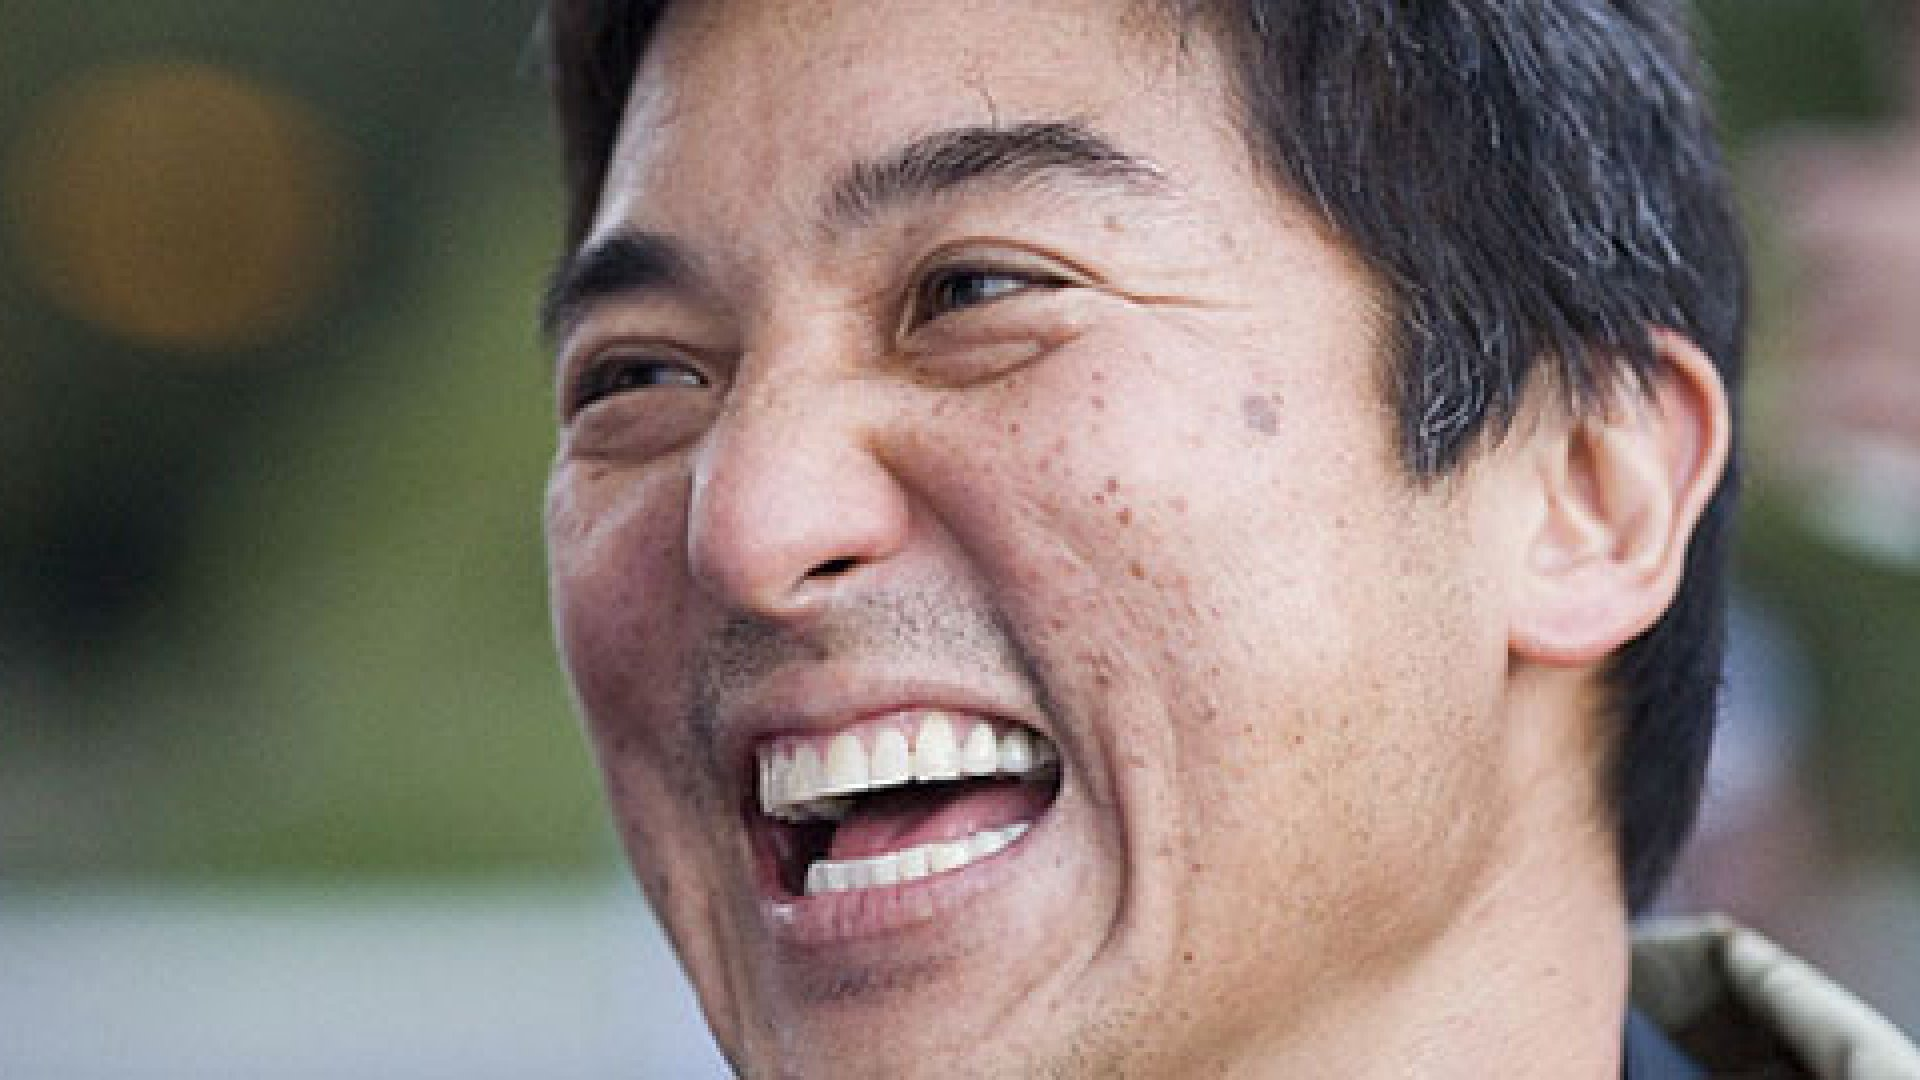 Guy Kawasaki is a Silicon Valley venture capitalist and a former Apple evangelist. Currently he is a Managing Director of Garage Technology Ventures.